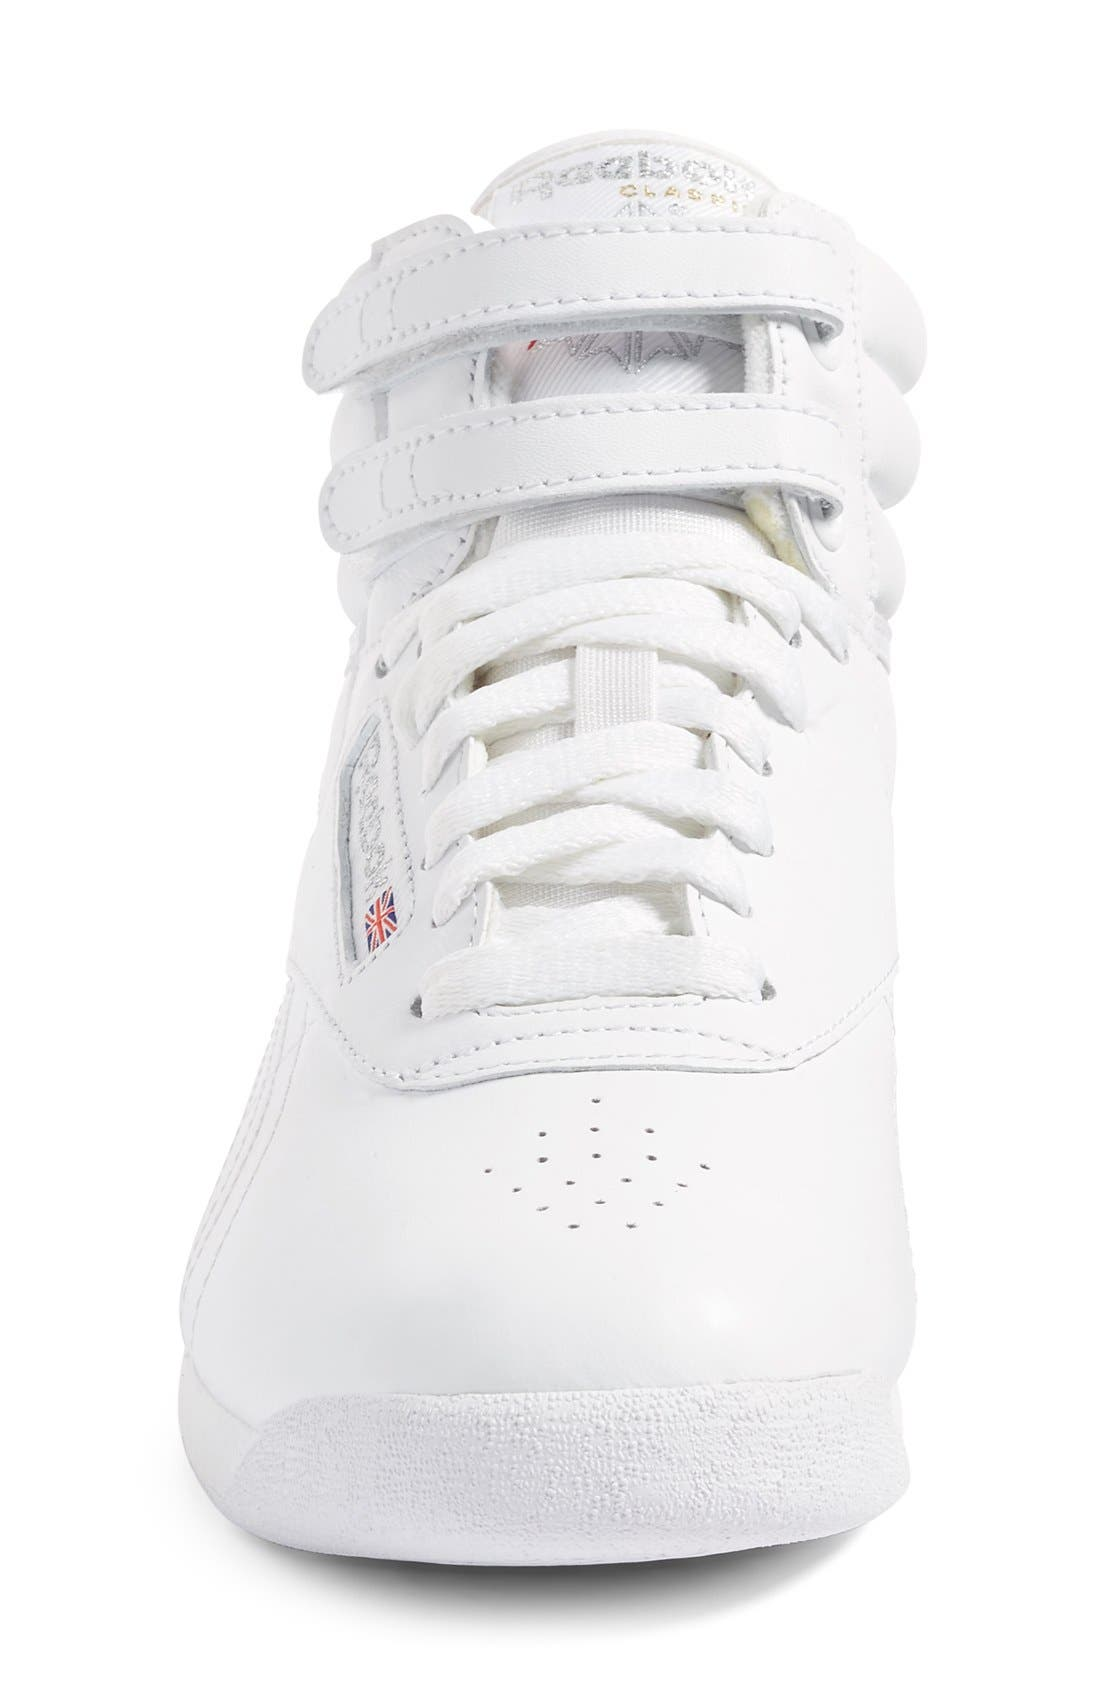 Alternate Image 3  - Reebok 'Freestyle Hi' Sneaker (Women)